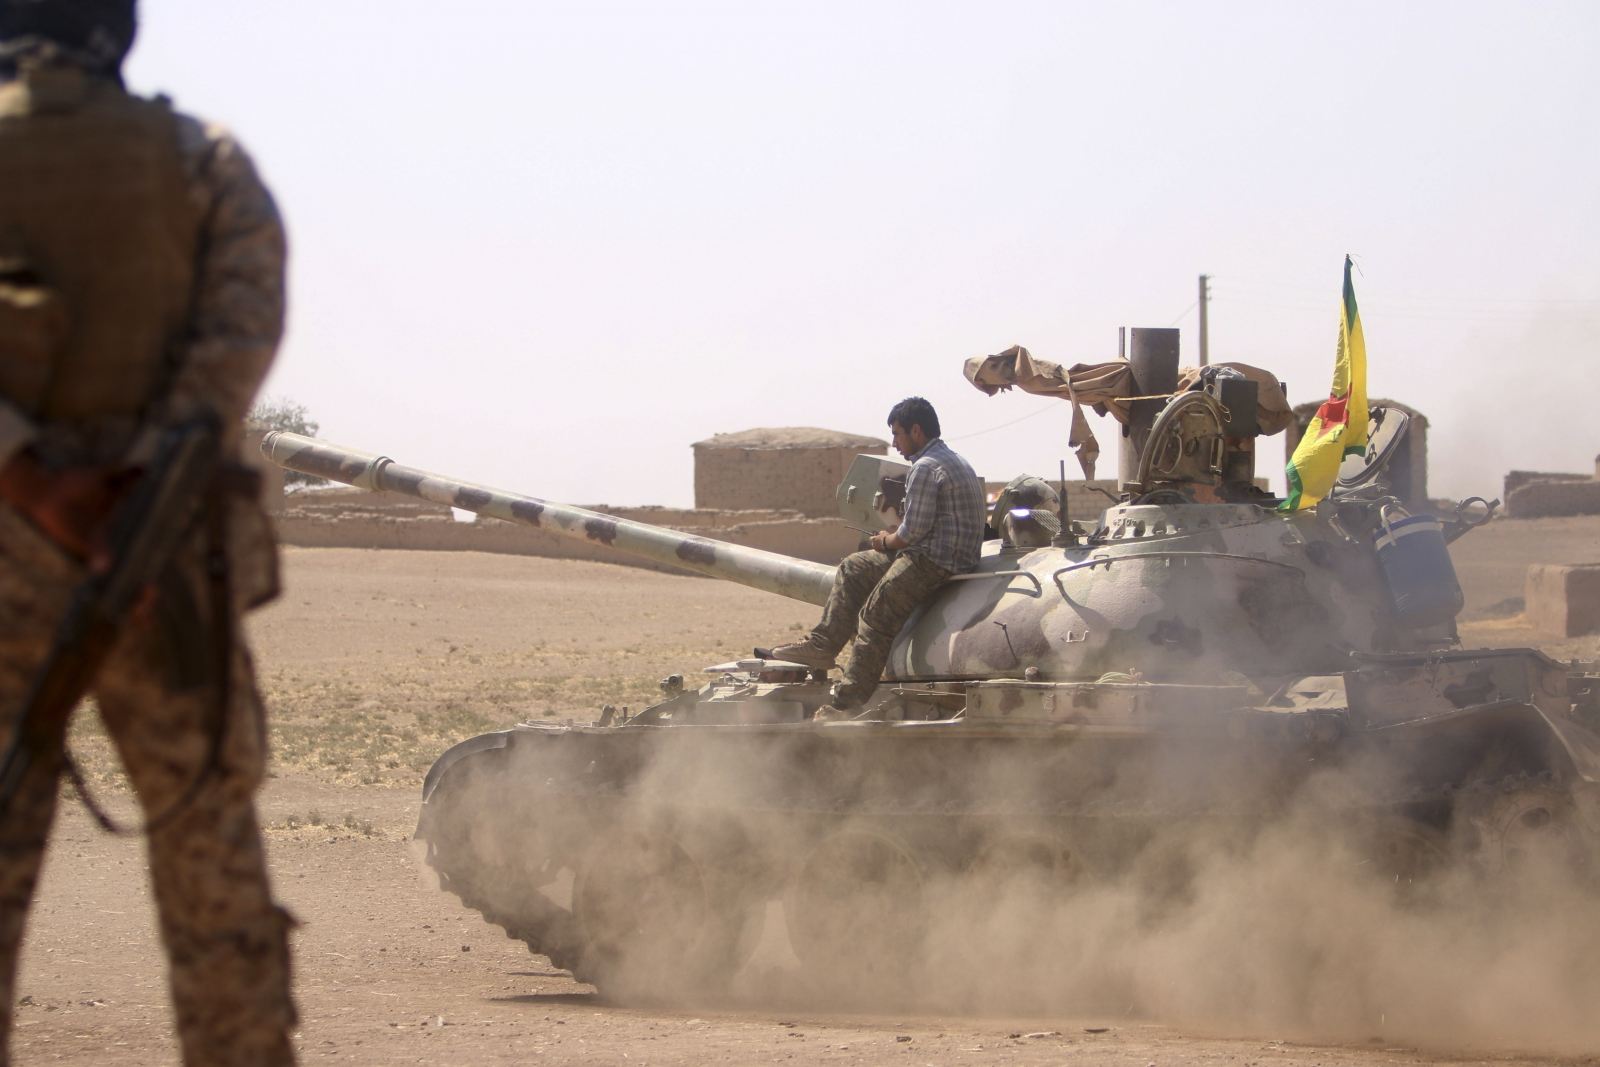 Kurdish People's Protection Units (YPG) drive a tank in villages surrounding Jazaa, in Qamishli countryside